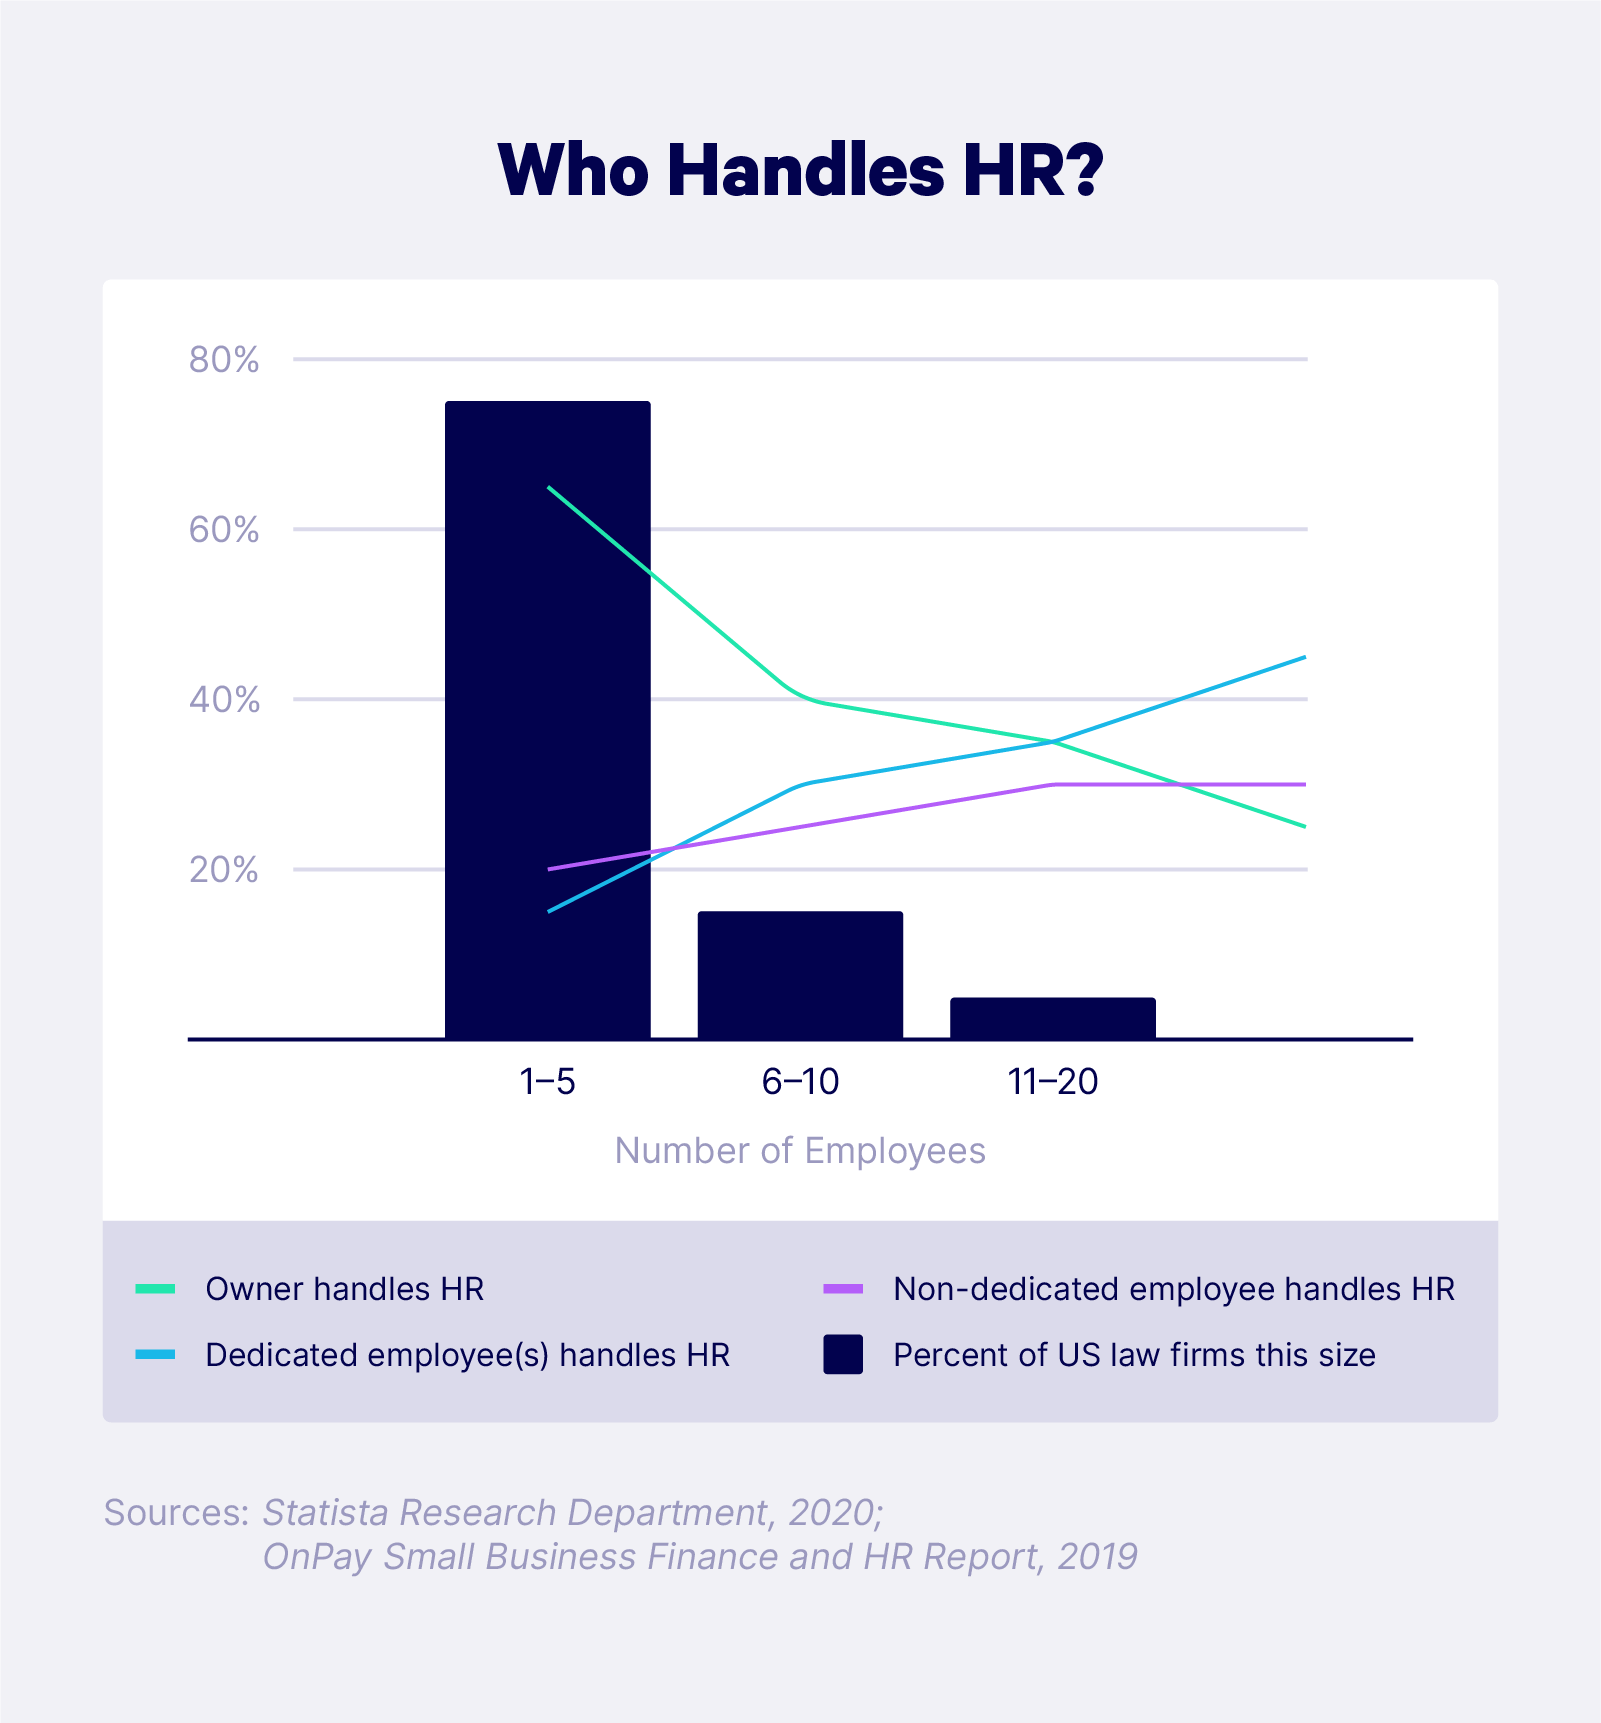 Illustrated chart demonstrating results of a survey on which employee handles HR in different U.S. law firms